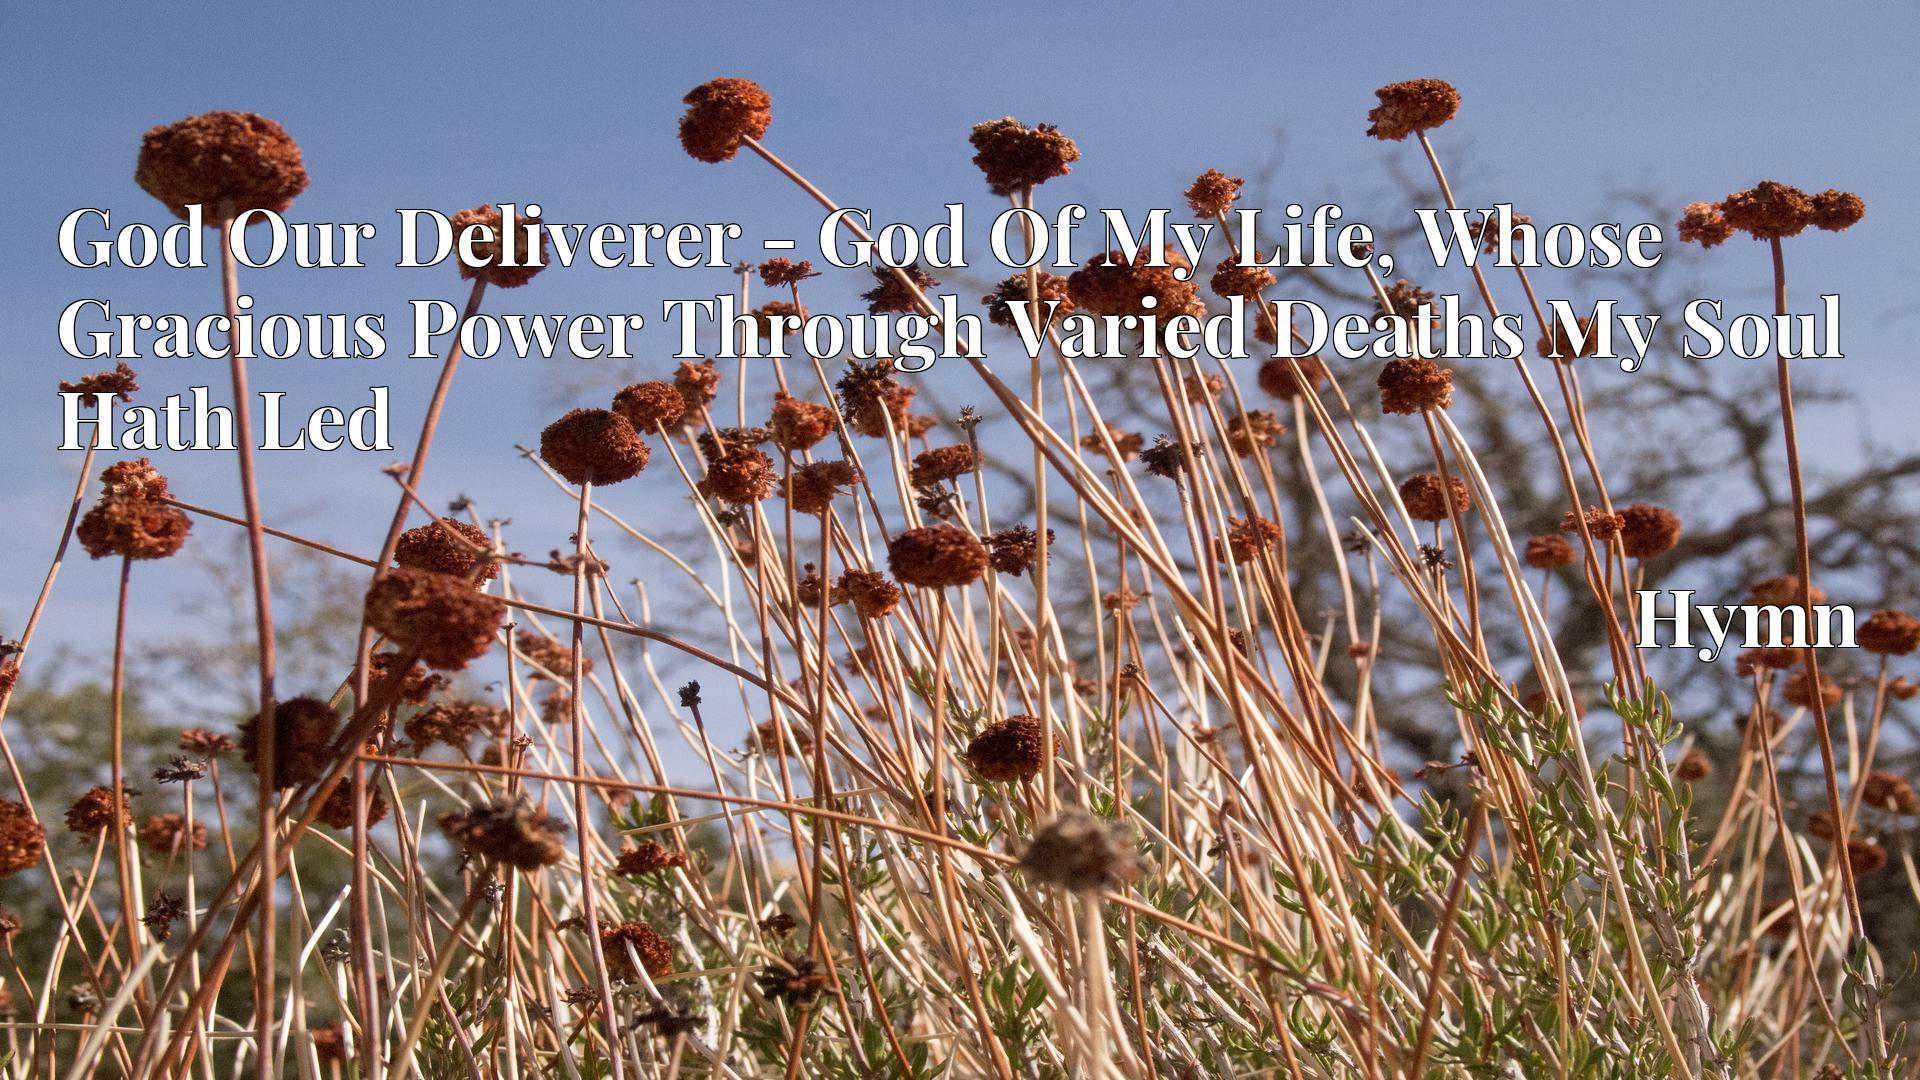 God Our Deliverer - God Of My Life, Whose Gracious Power Through Varied Deaths My Soul Hath Led Hymn